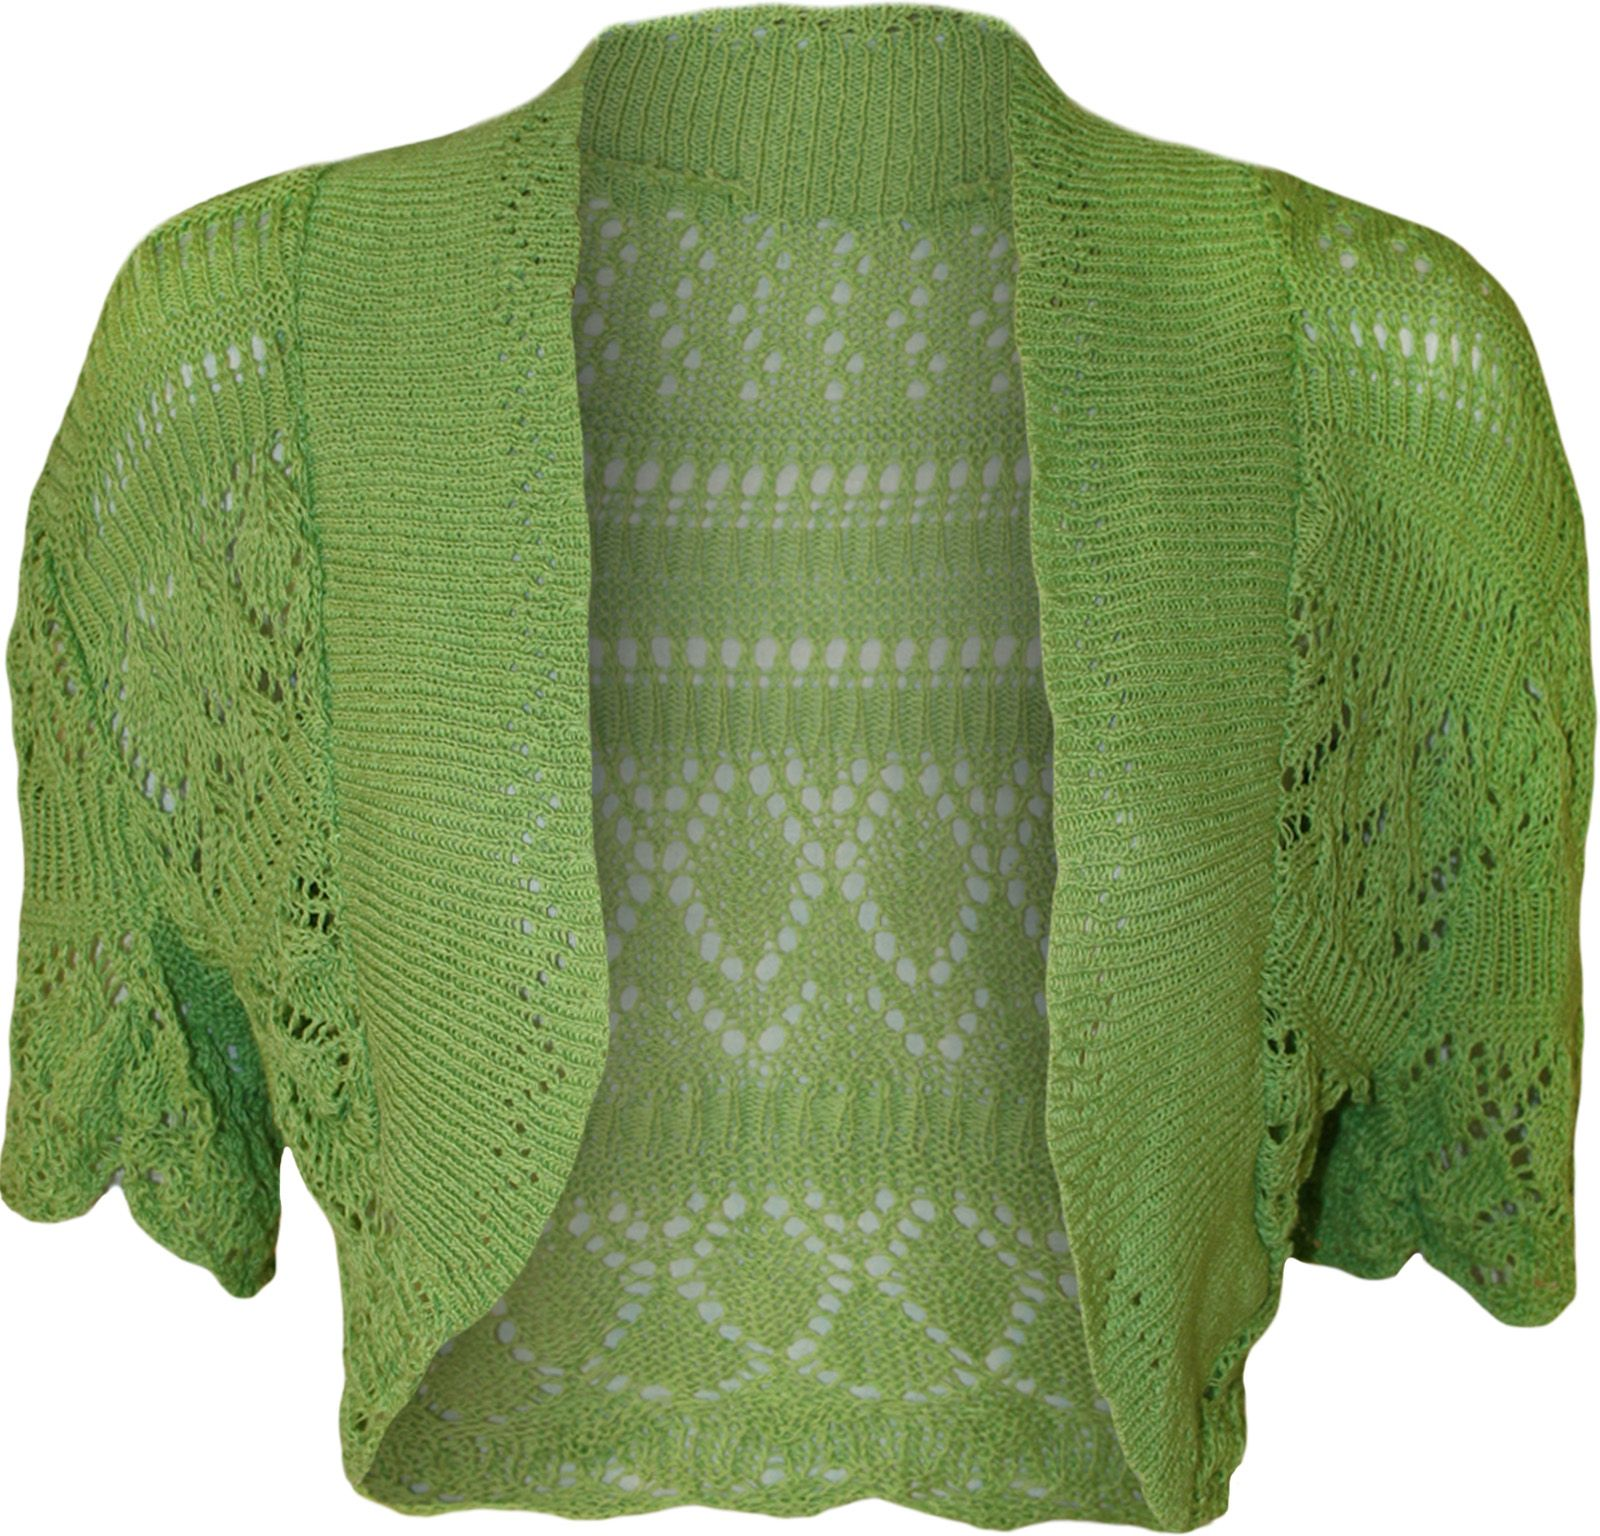 New Womens Crochet Knitted Short Sleeve Ladies Bolero Cardigan Top ...